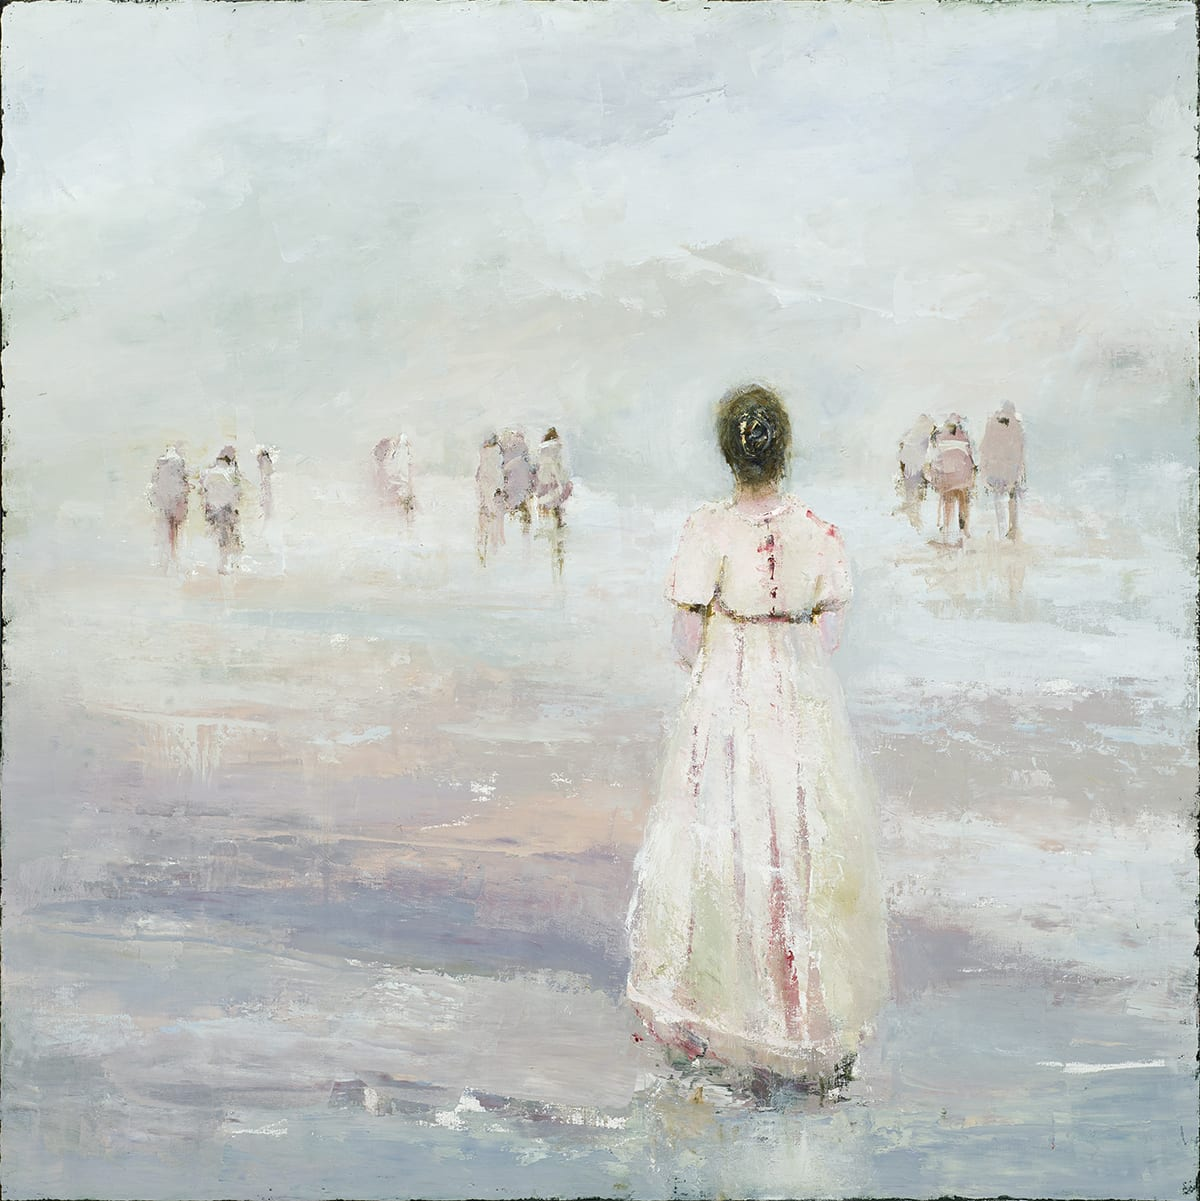 France Jodoin - Where the Feet Rested and Locked for a Moment